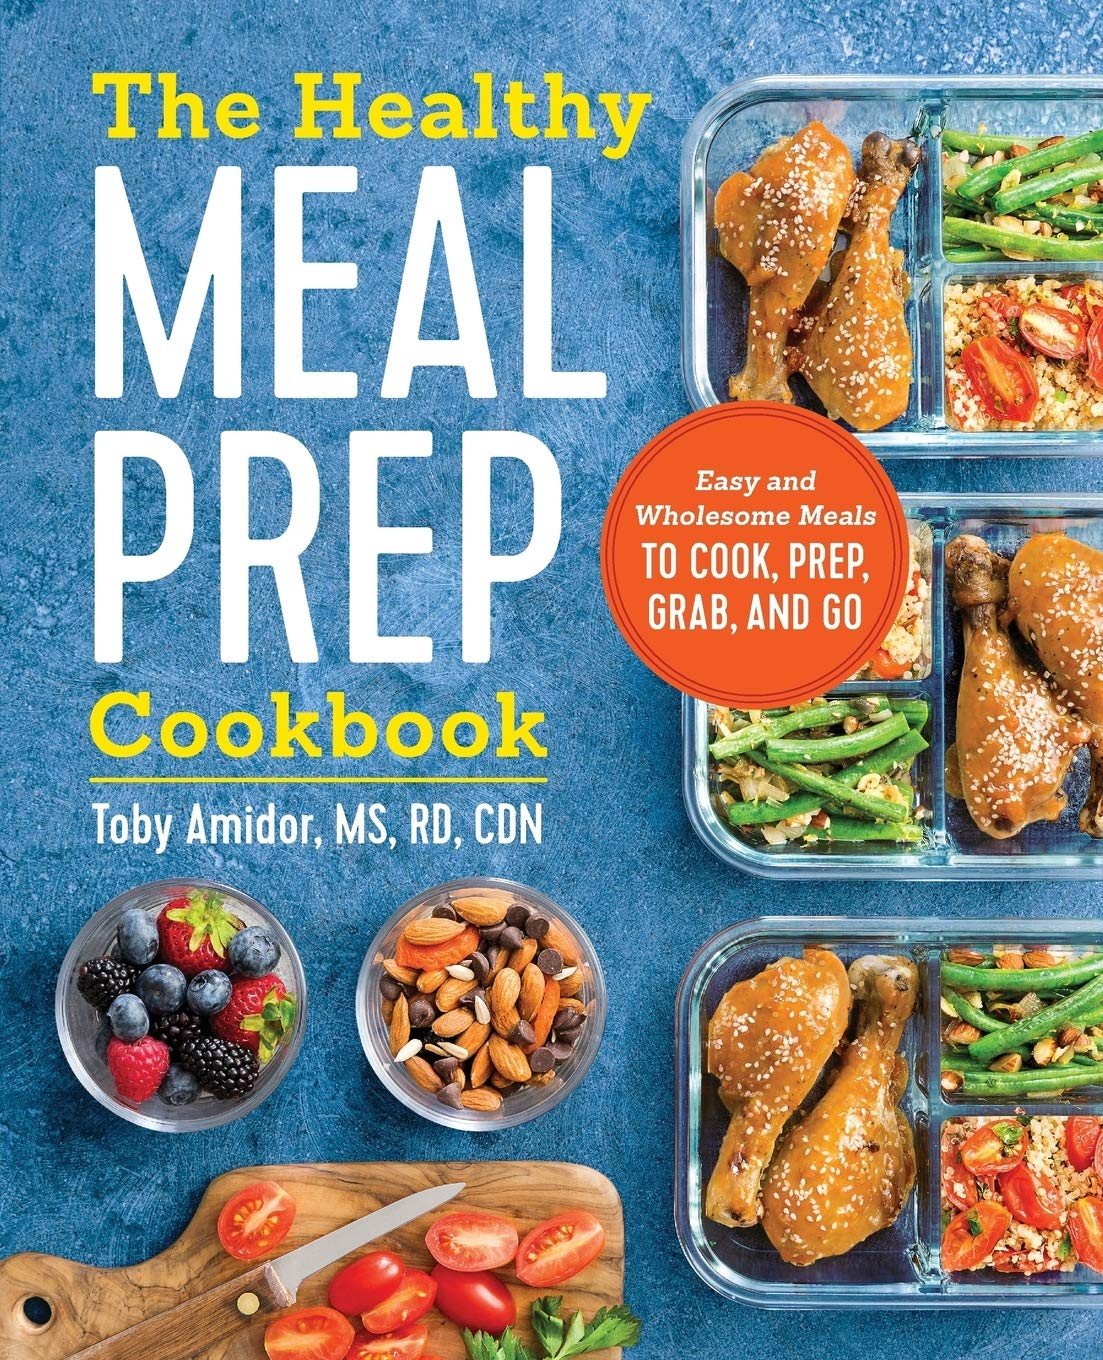 The Healthy Meal Prep Cookbook: Easy and Wholesome Meals to Cook, Prep, Grab, and Go 1